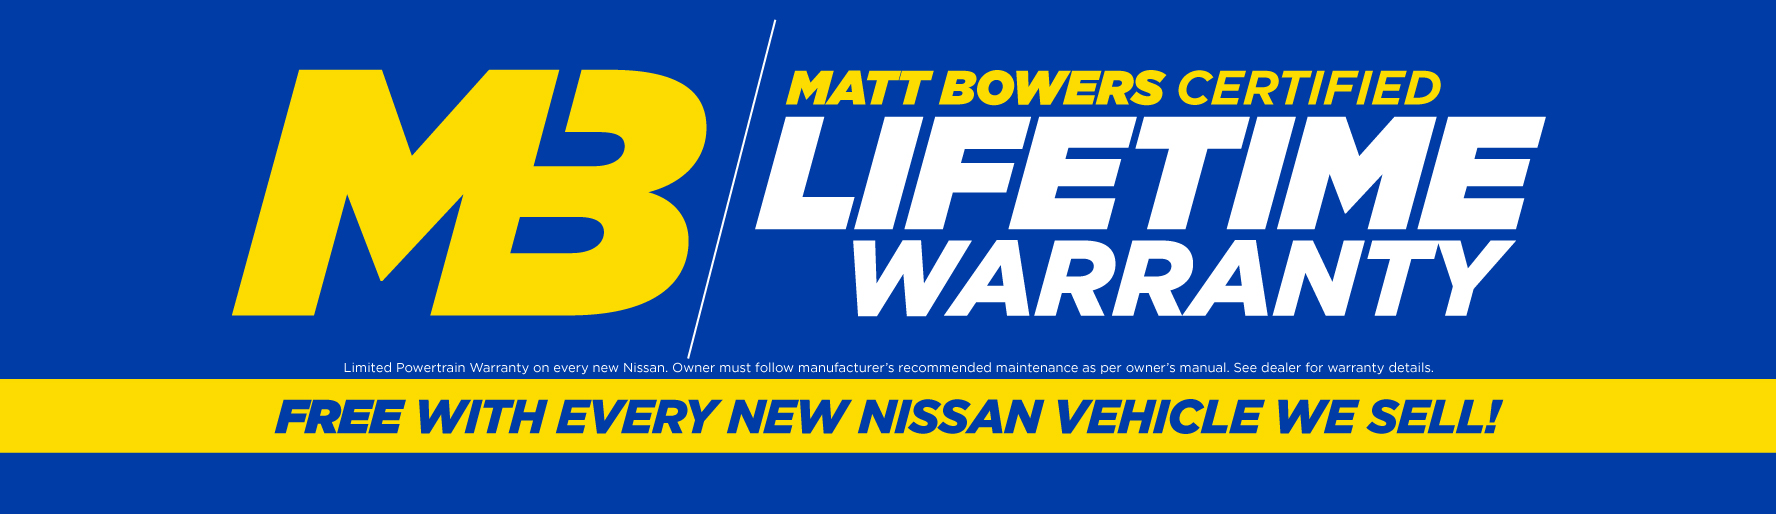 Matt Bowers Certified Lifetime Warranty